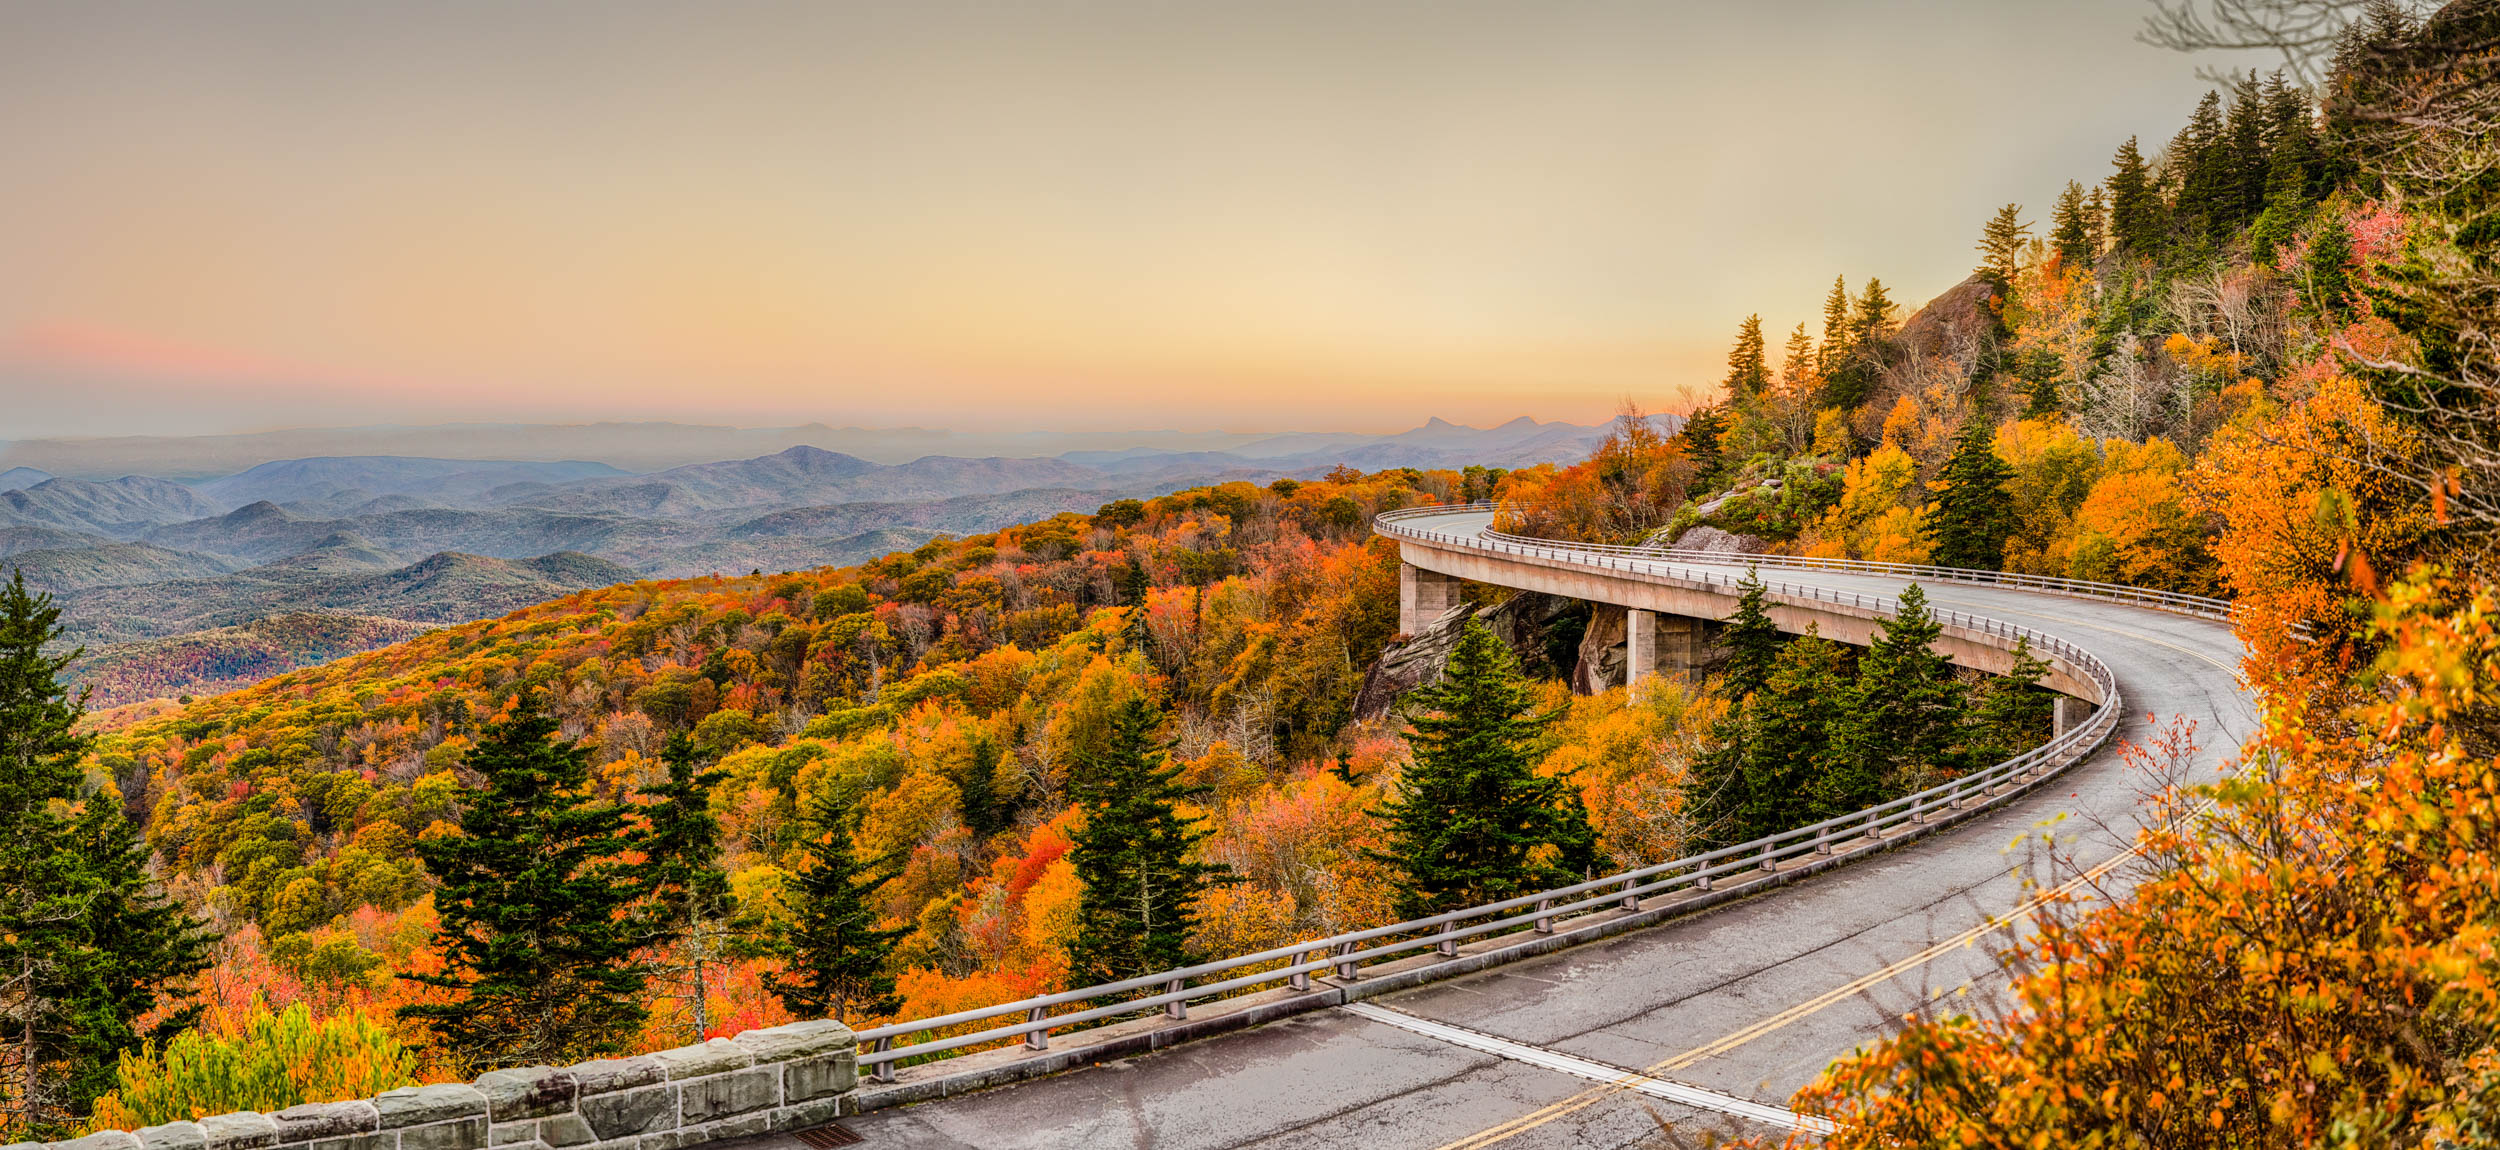 Linn Cove Viaduct 72